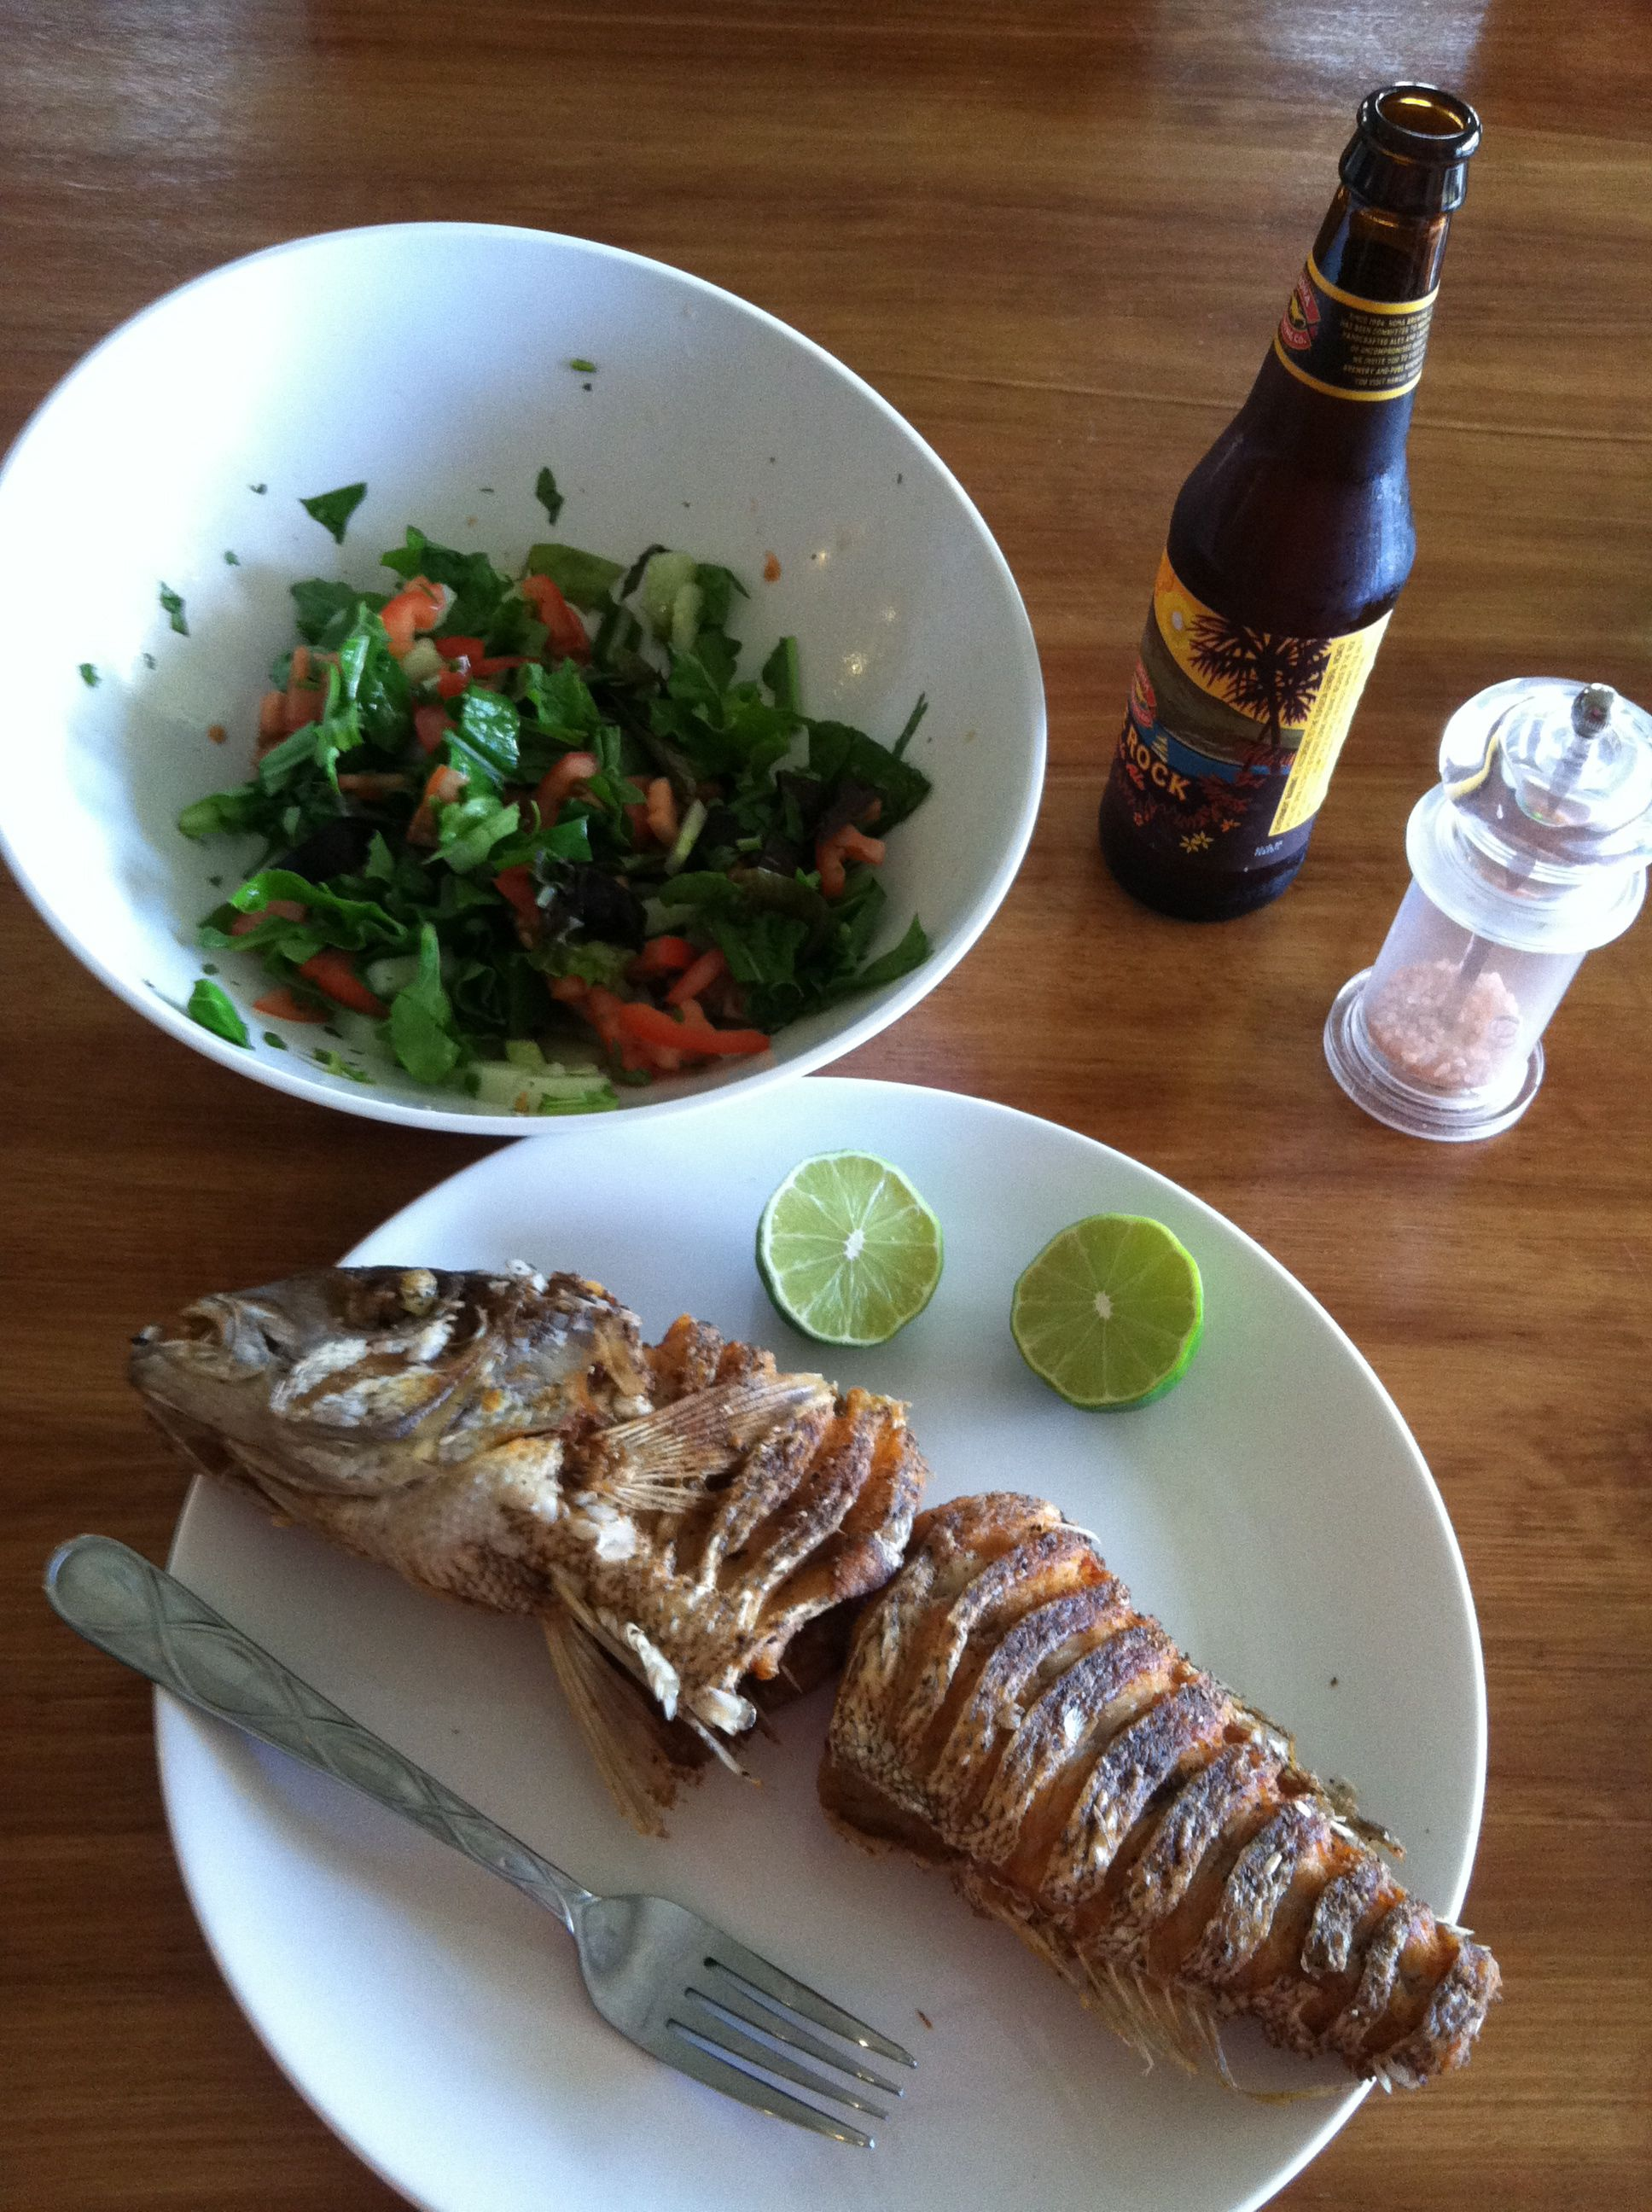 Costarrican style fried fish.